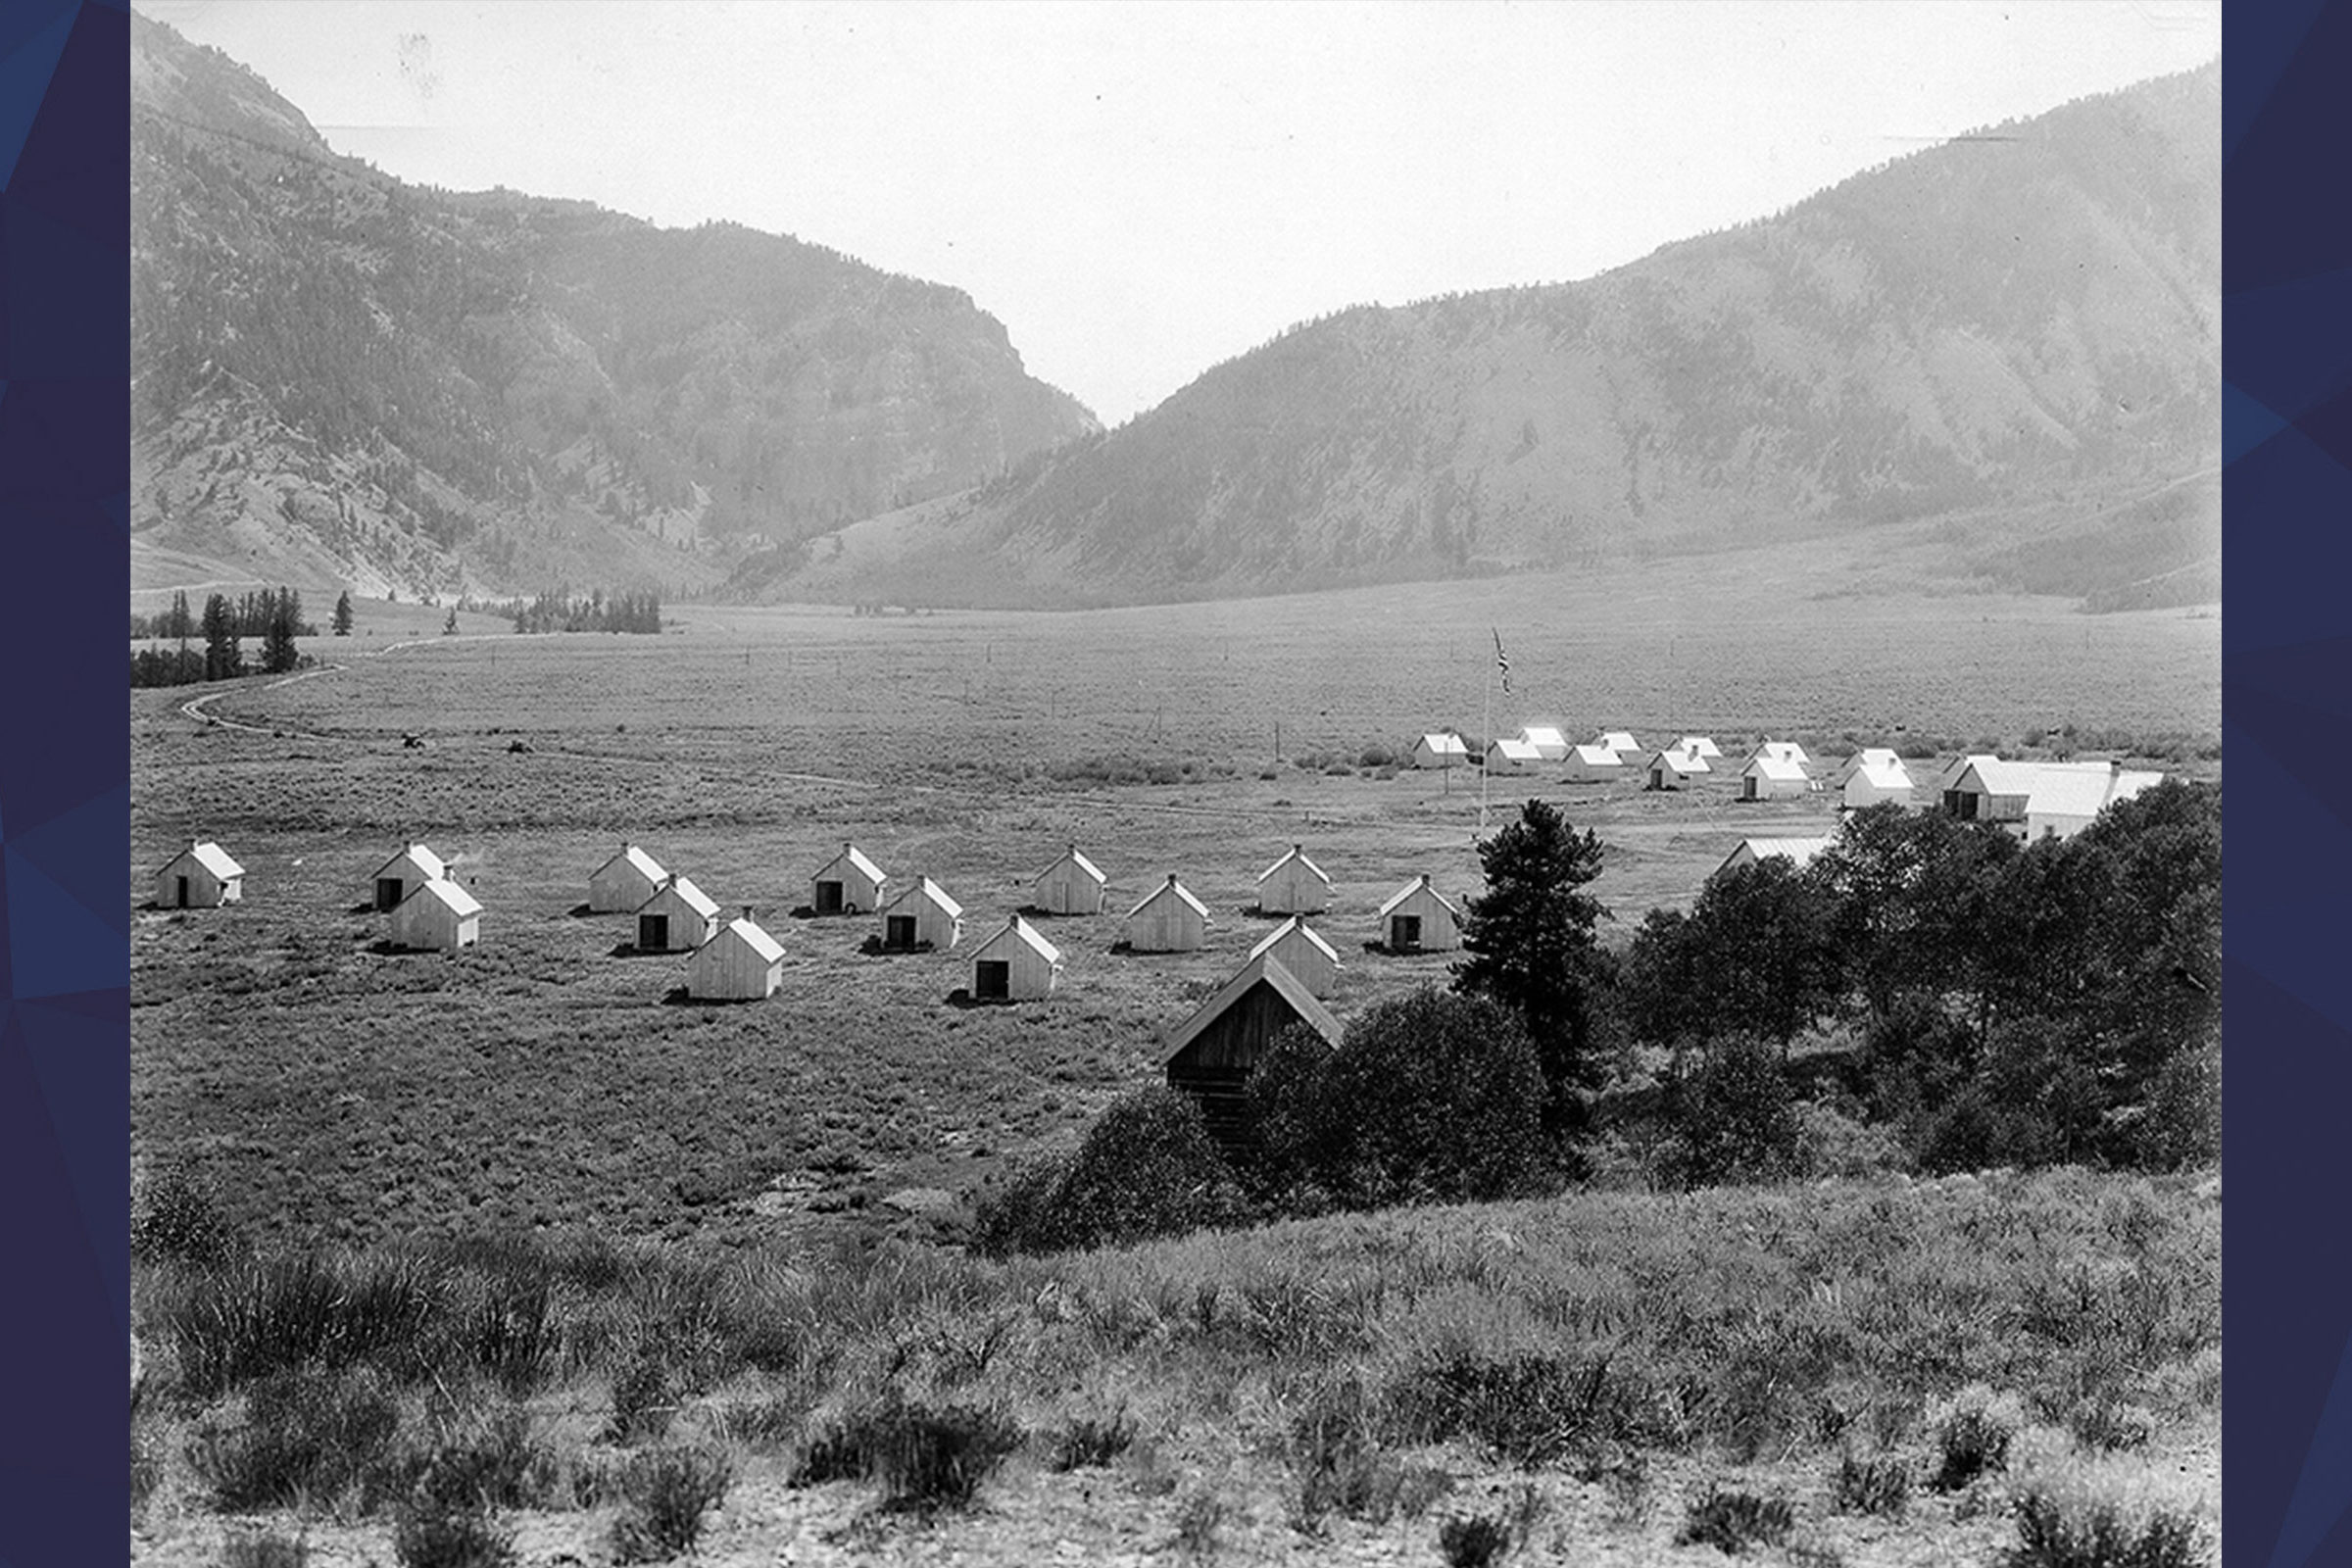 Field at Camp Davis with a bunch of small cabins in it